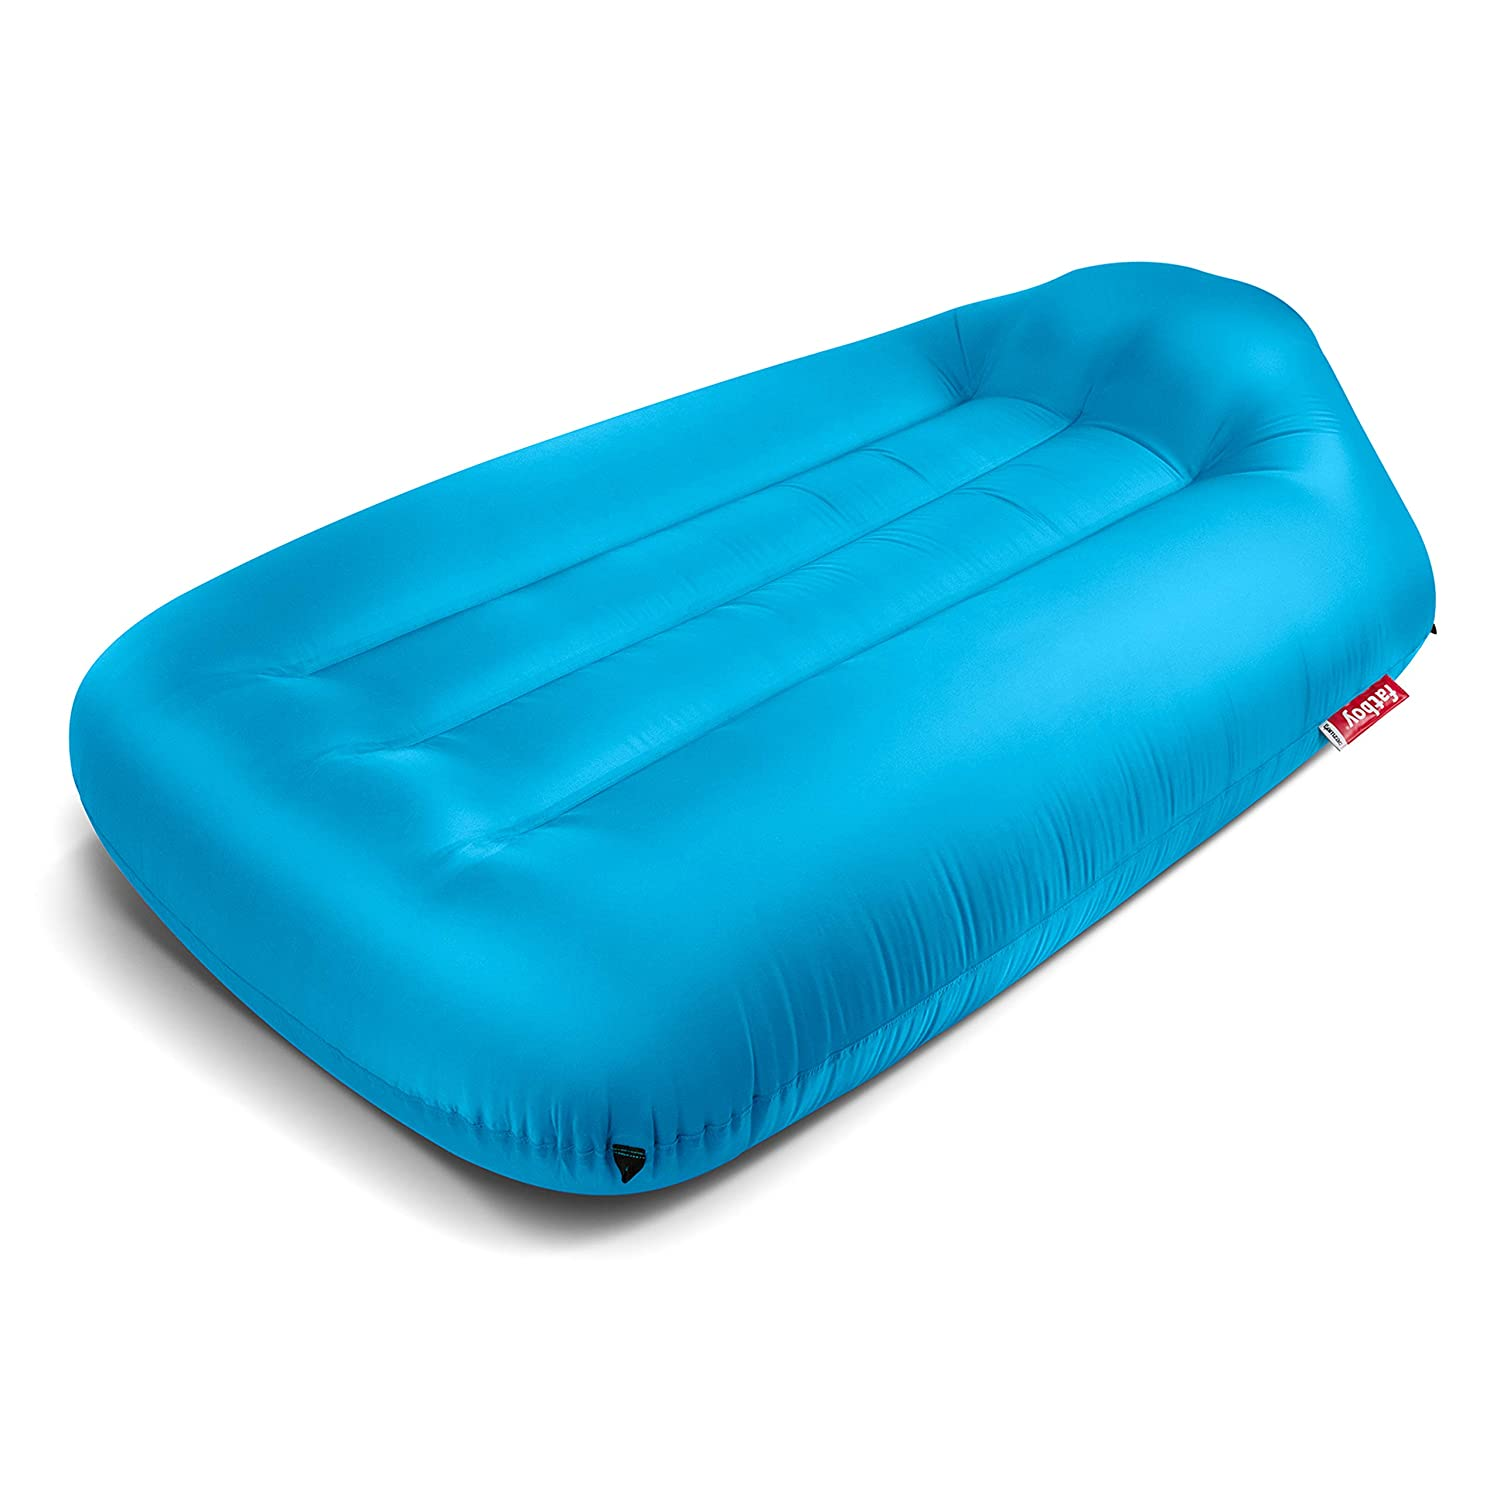 Fatboy Lamzac Inflatable Air Lounger Bed and Carry Case